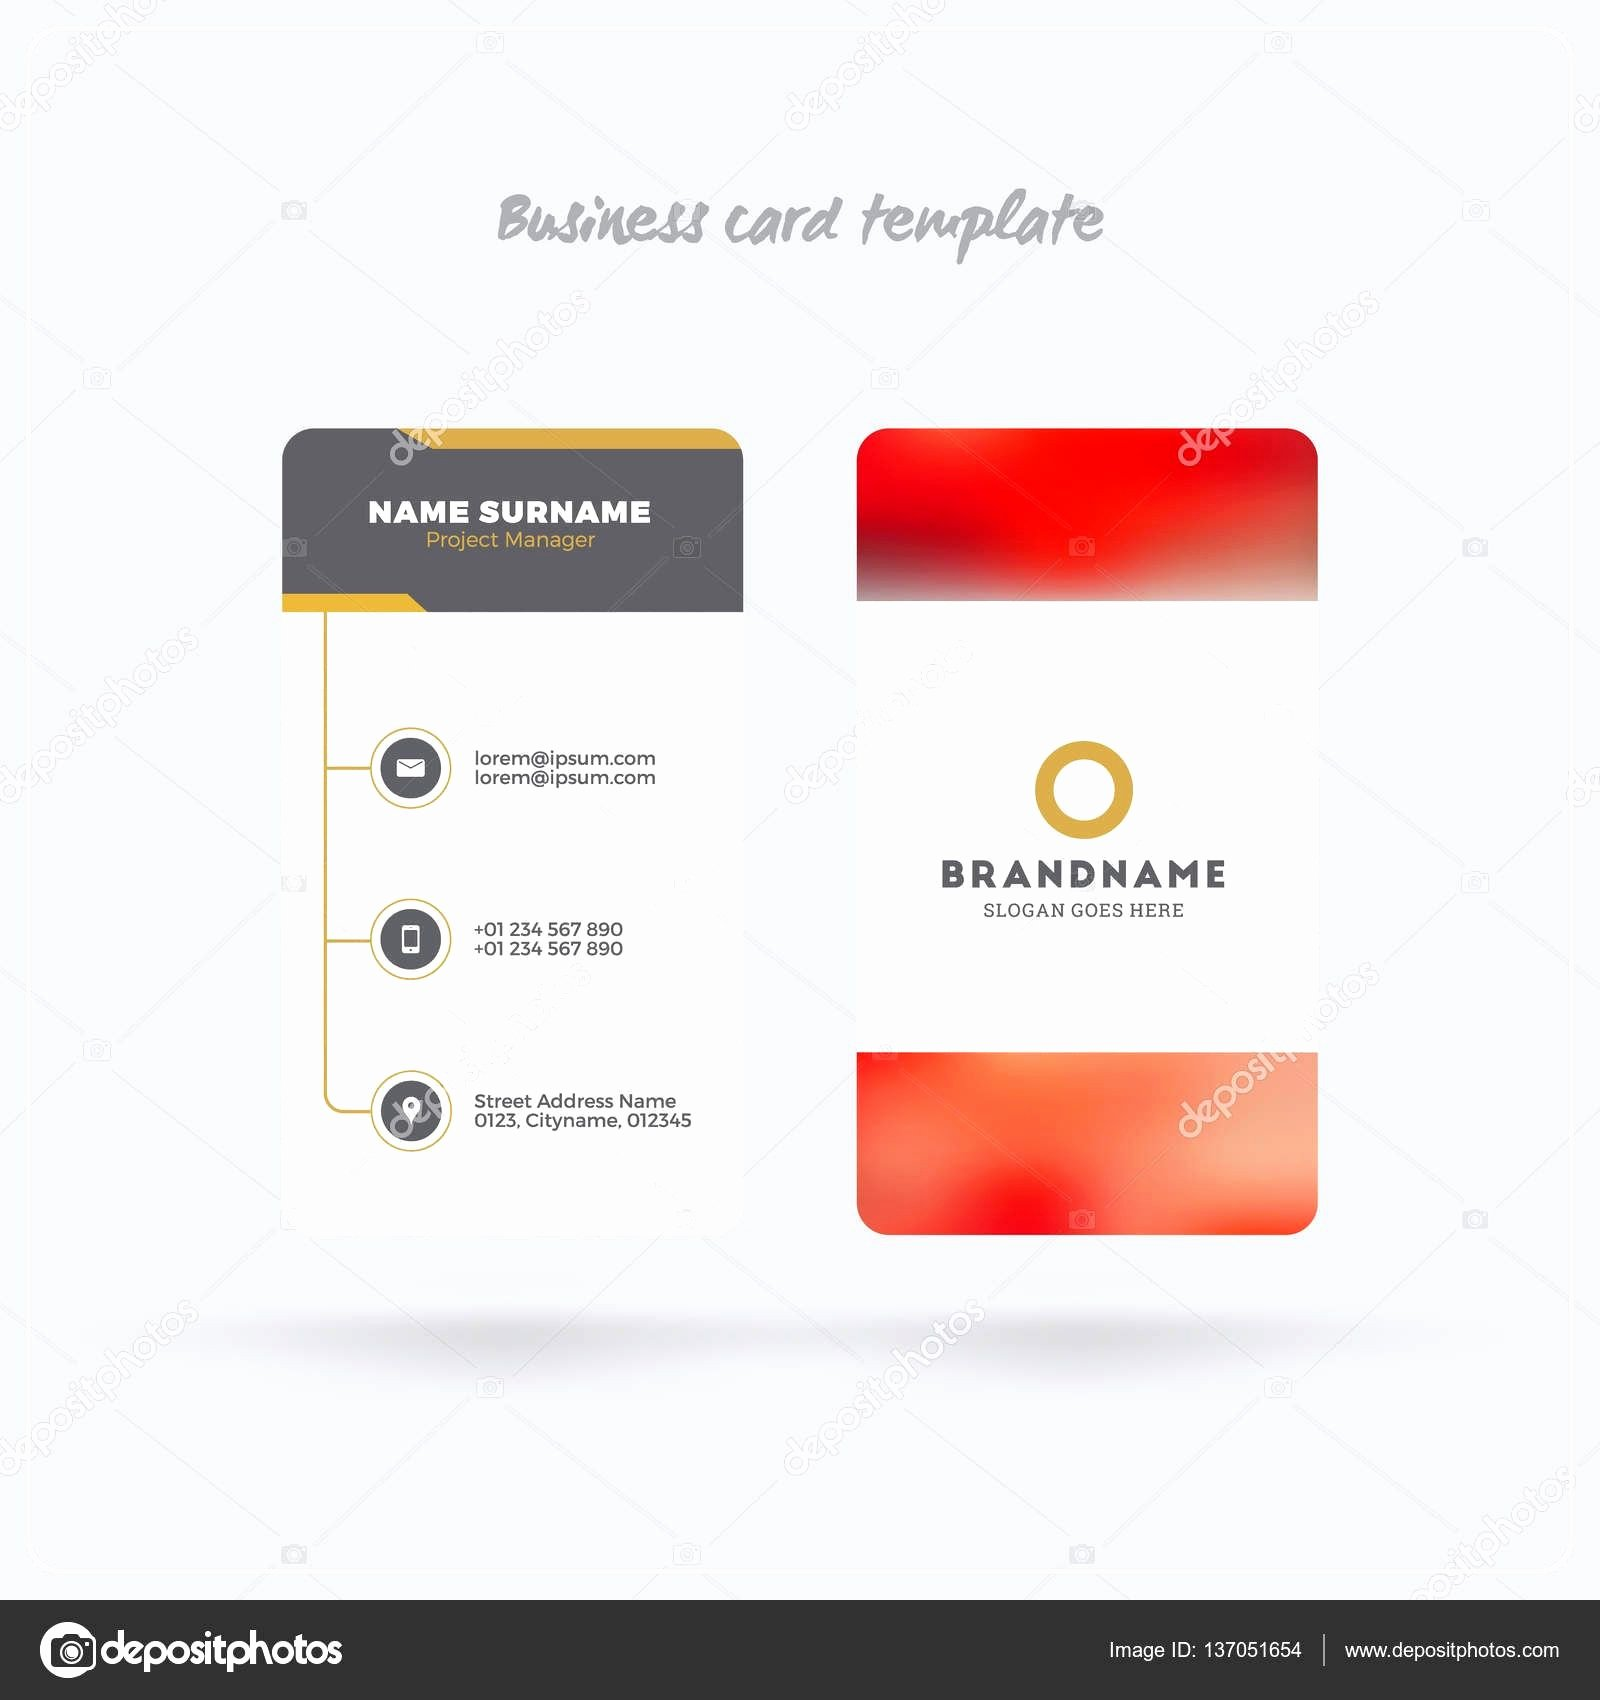 Rounded Business Cards Template New Business Card Rounded Corners Template Elegant Rounded